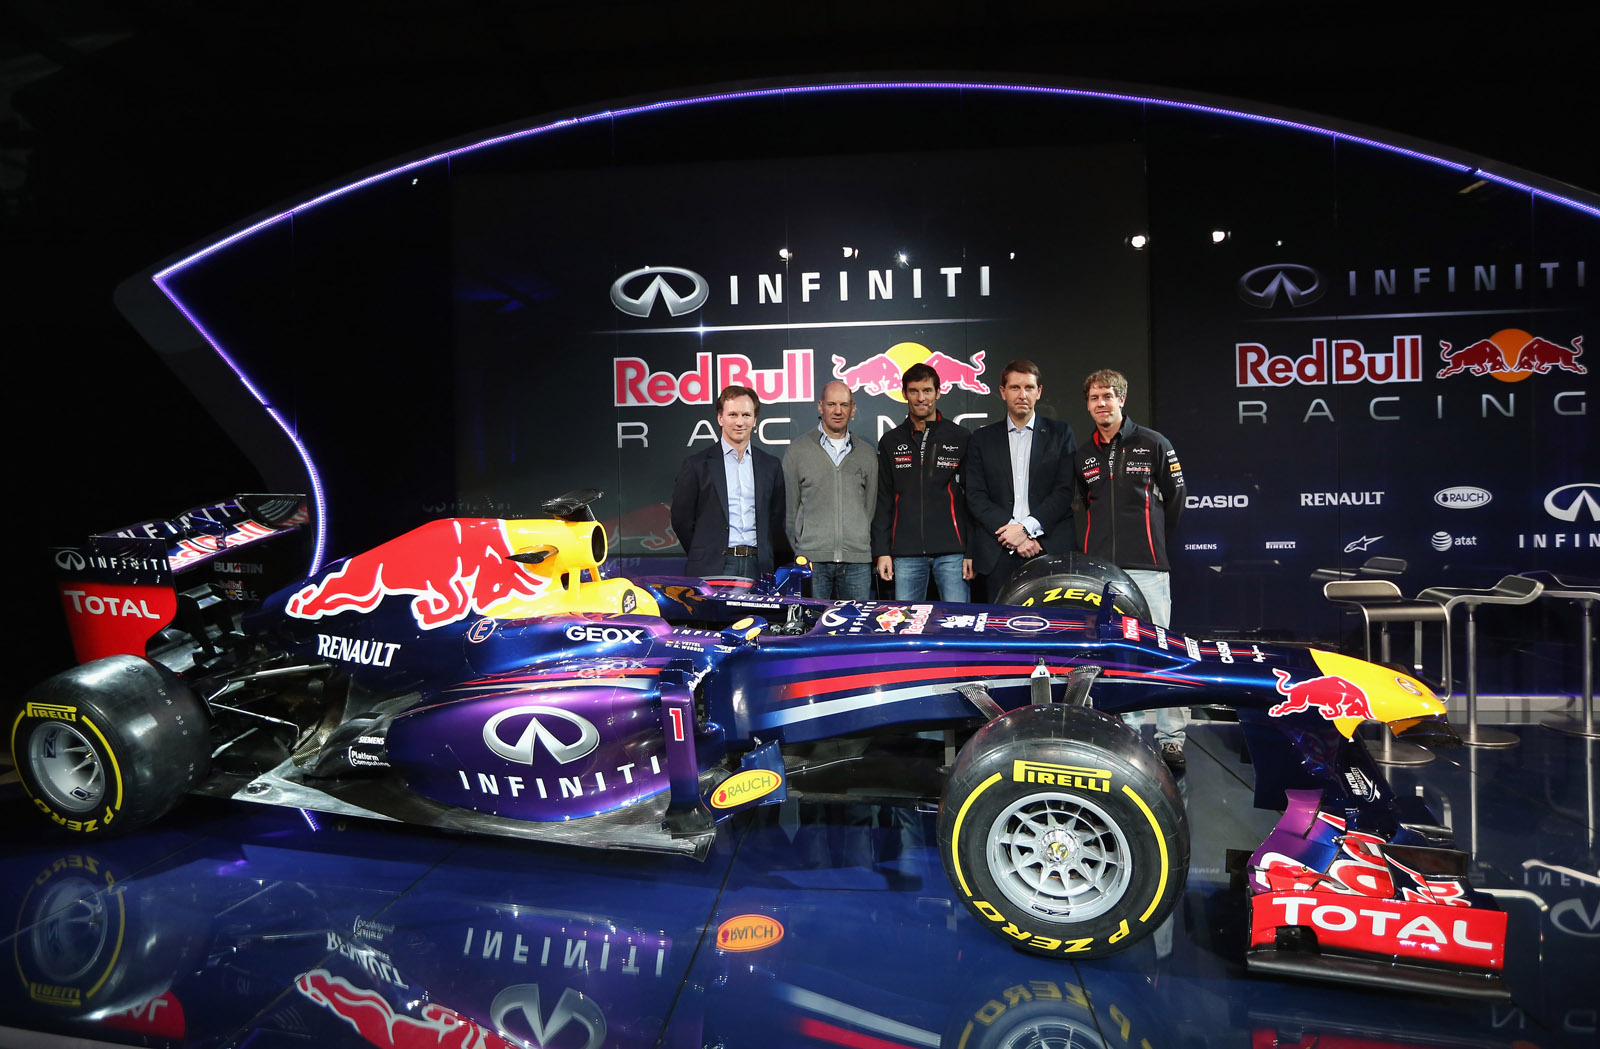 red bull product life cycle essays Read this essay on red bull marketing research come browse our large digital warehouse of free sample essays get the knowledge you need in order to pass your classes and more only at termpaperwarehousecom.